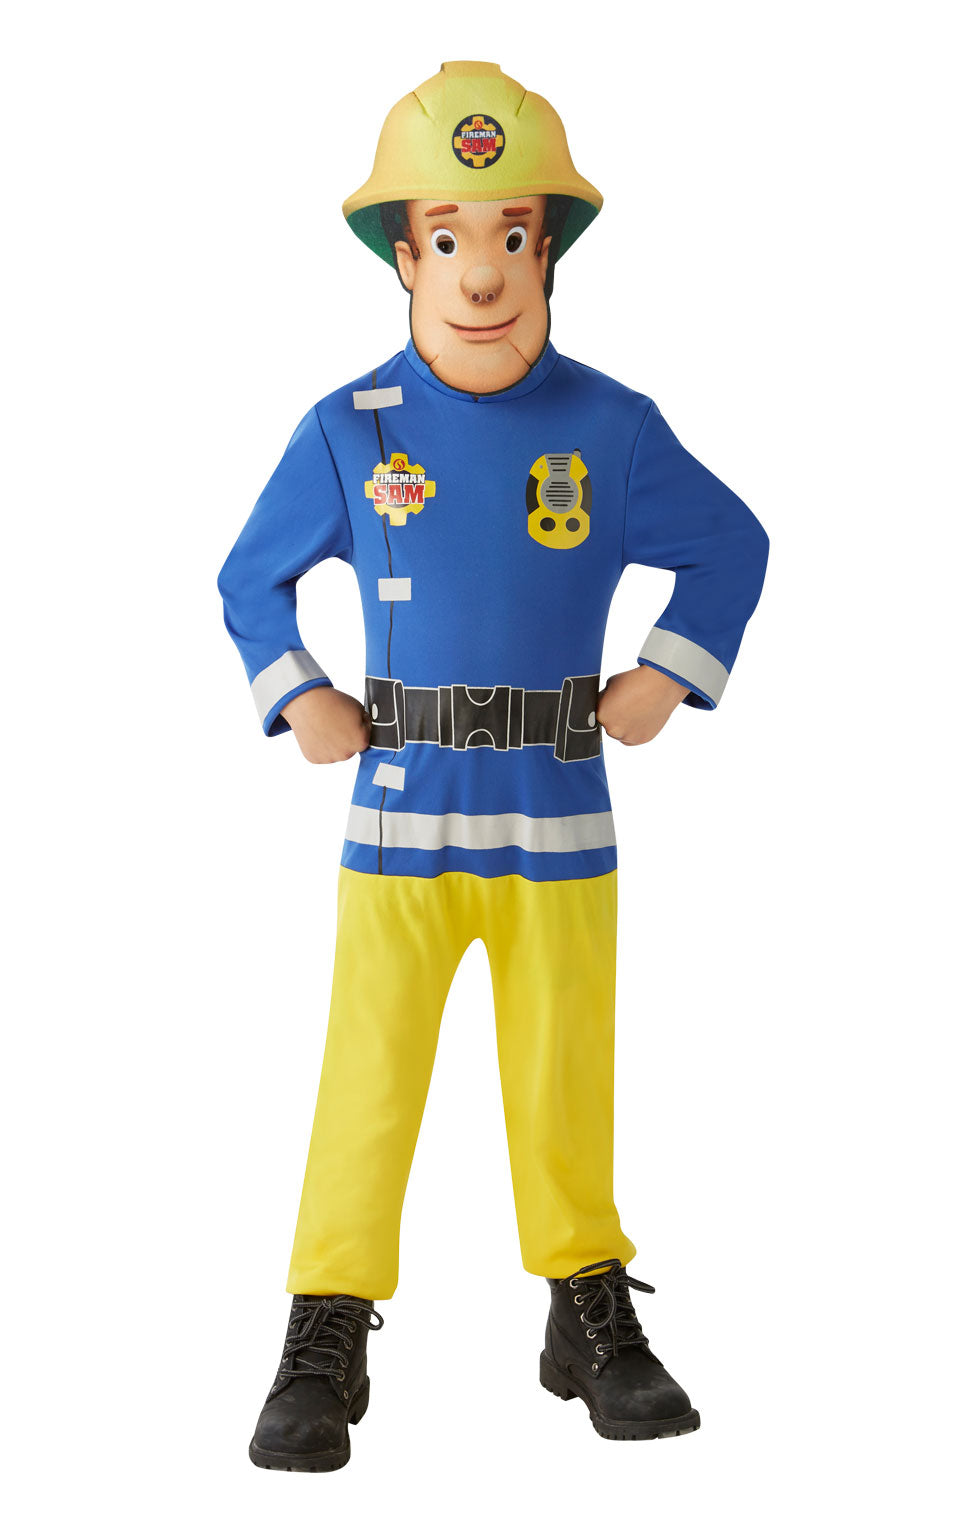 CHILD CLASSIC FIREMAN SAM Children's Fancy Dress Costume